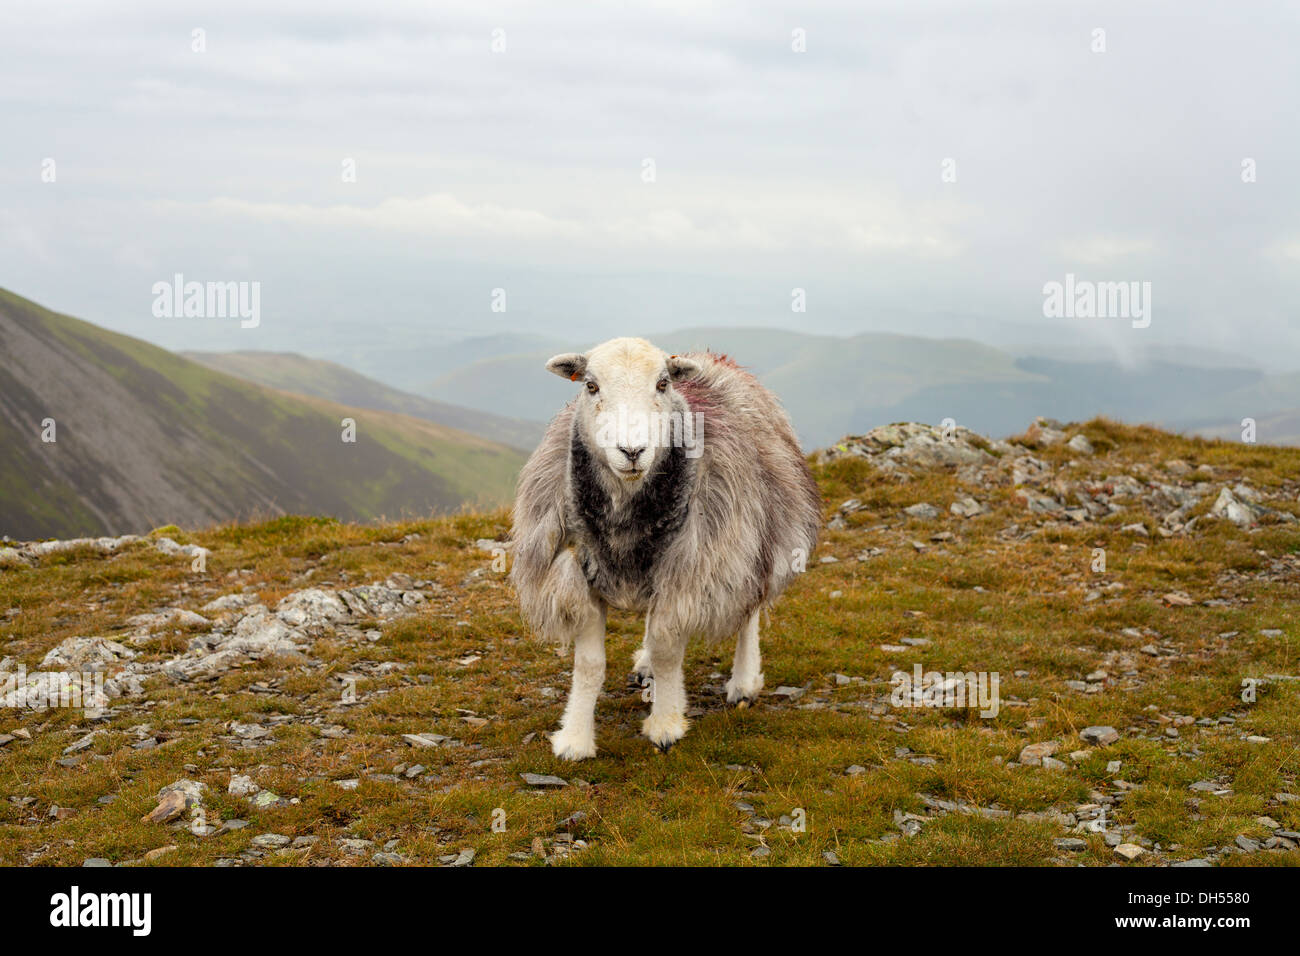 Sheep on the hills in Lake District - Stock Image